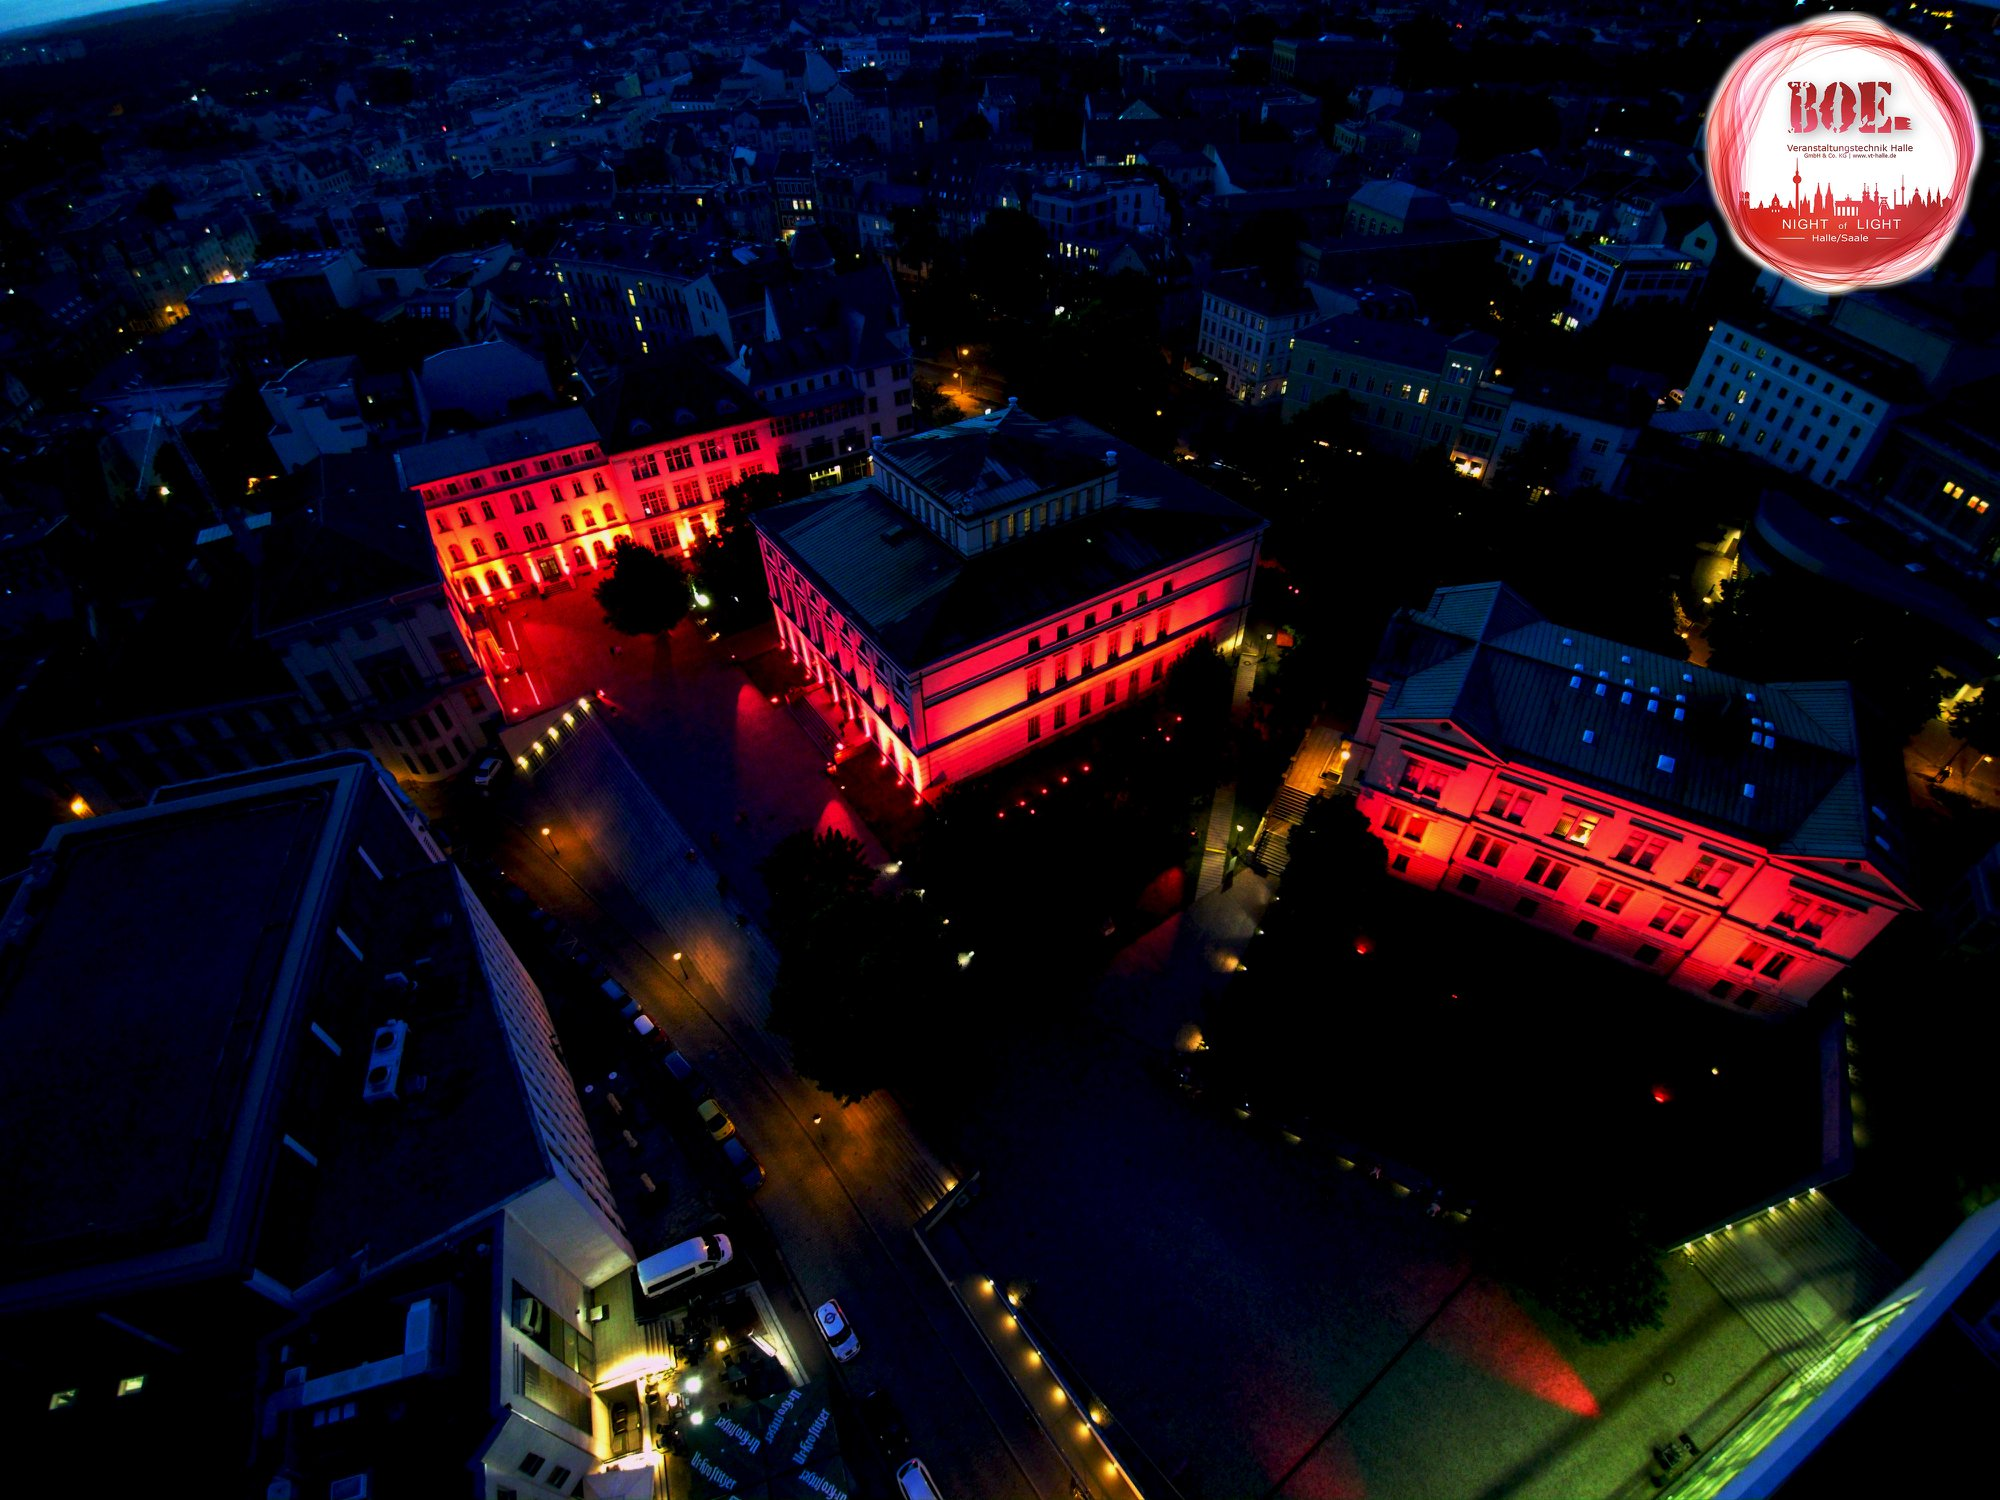 Night of Light - Veranstaltungstechnik Halle